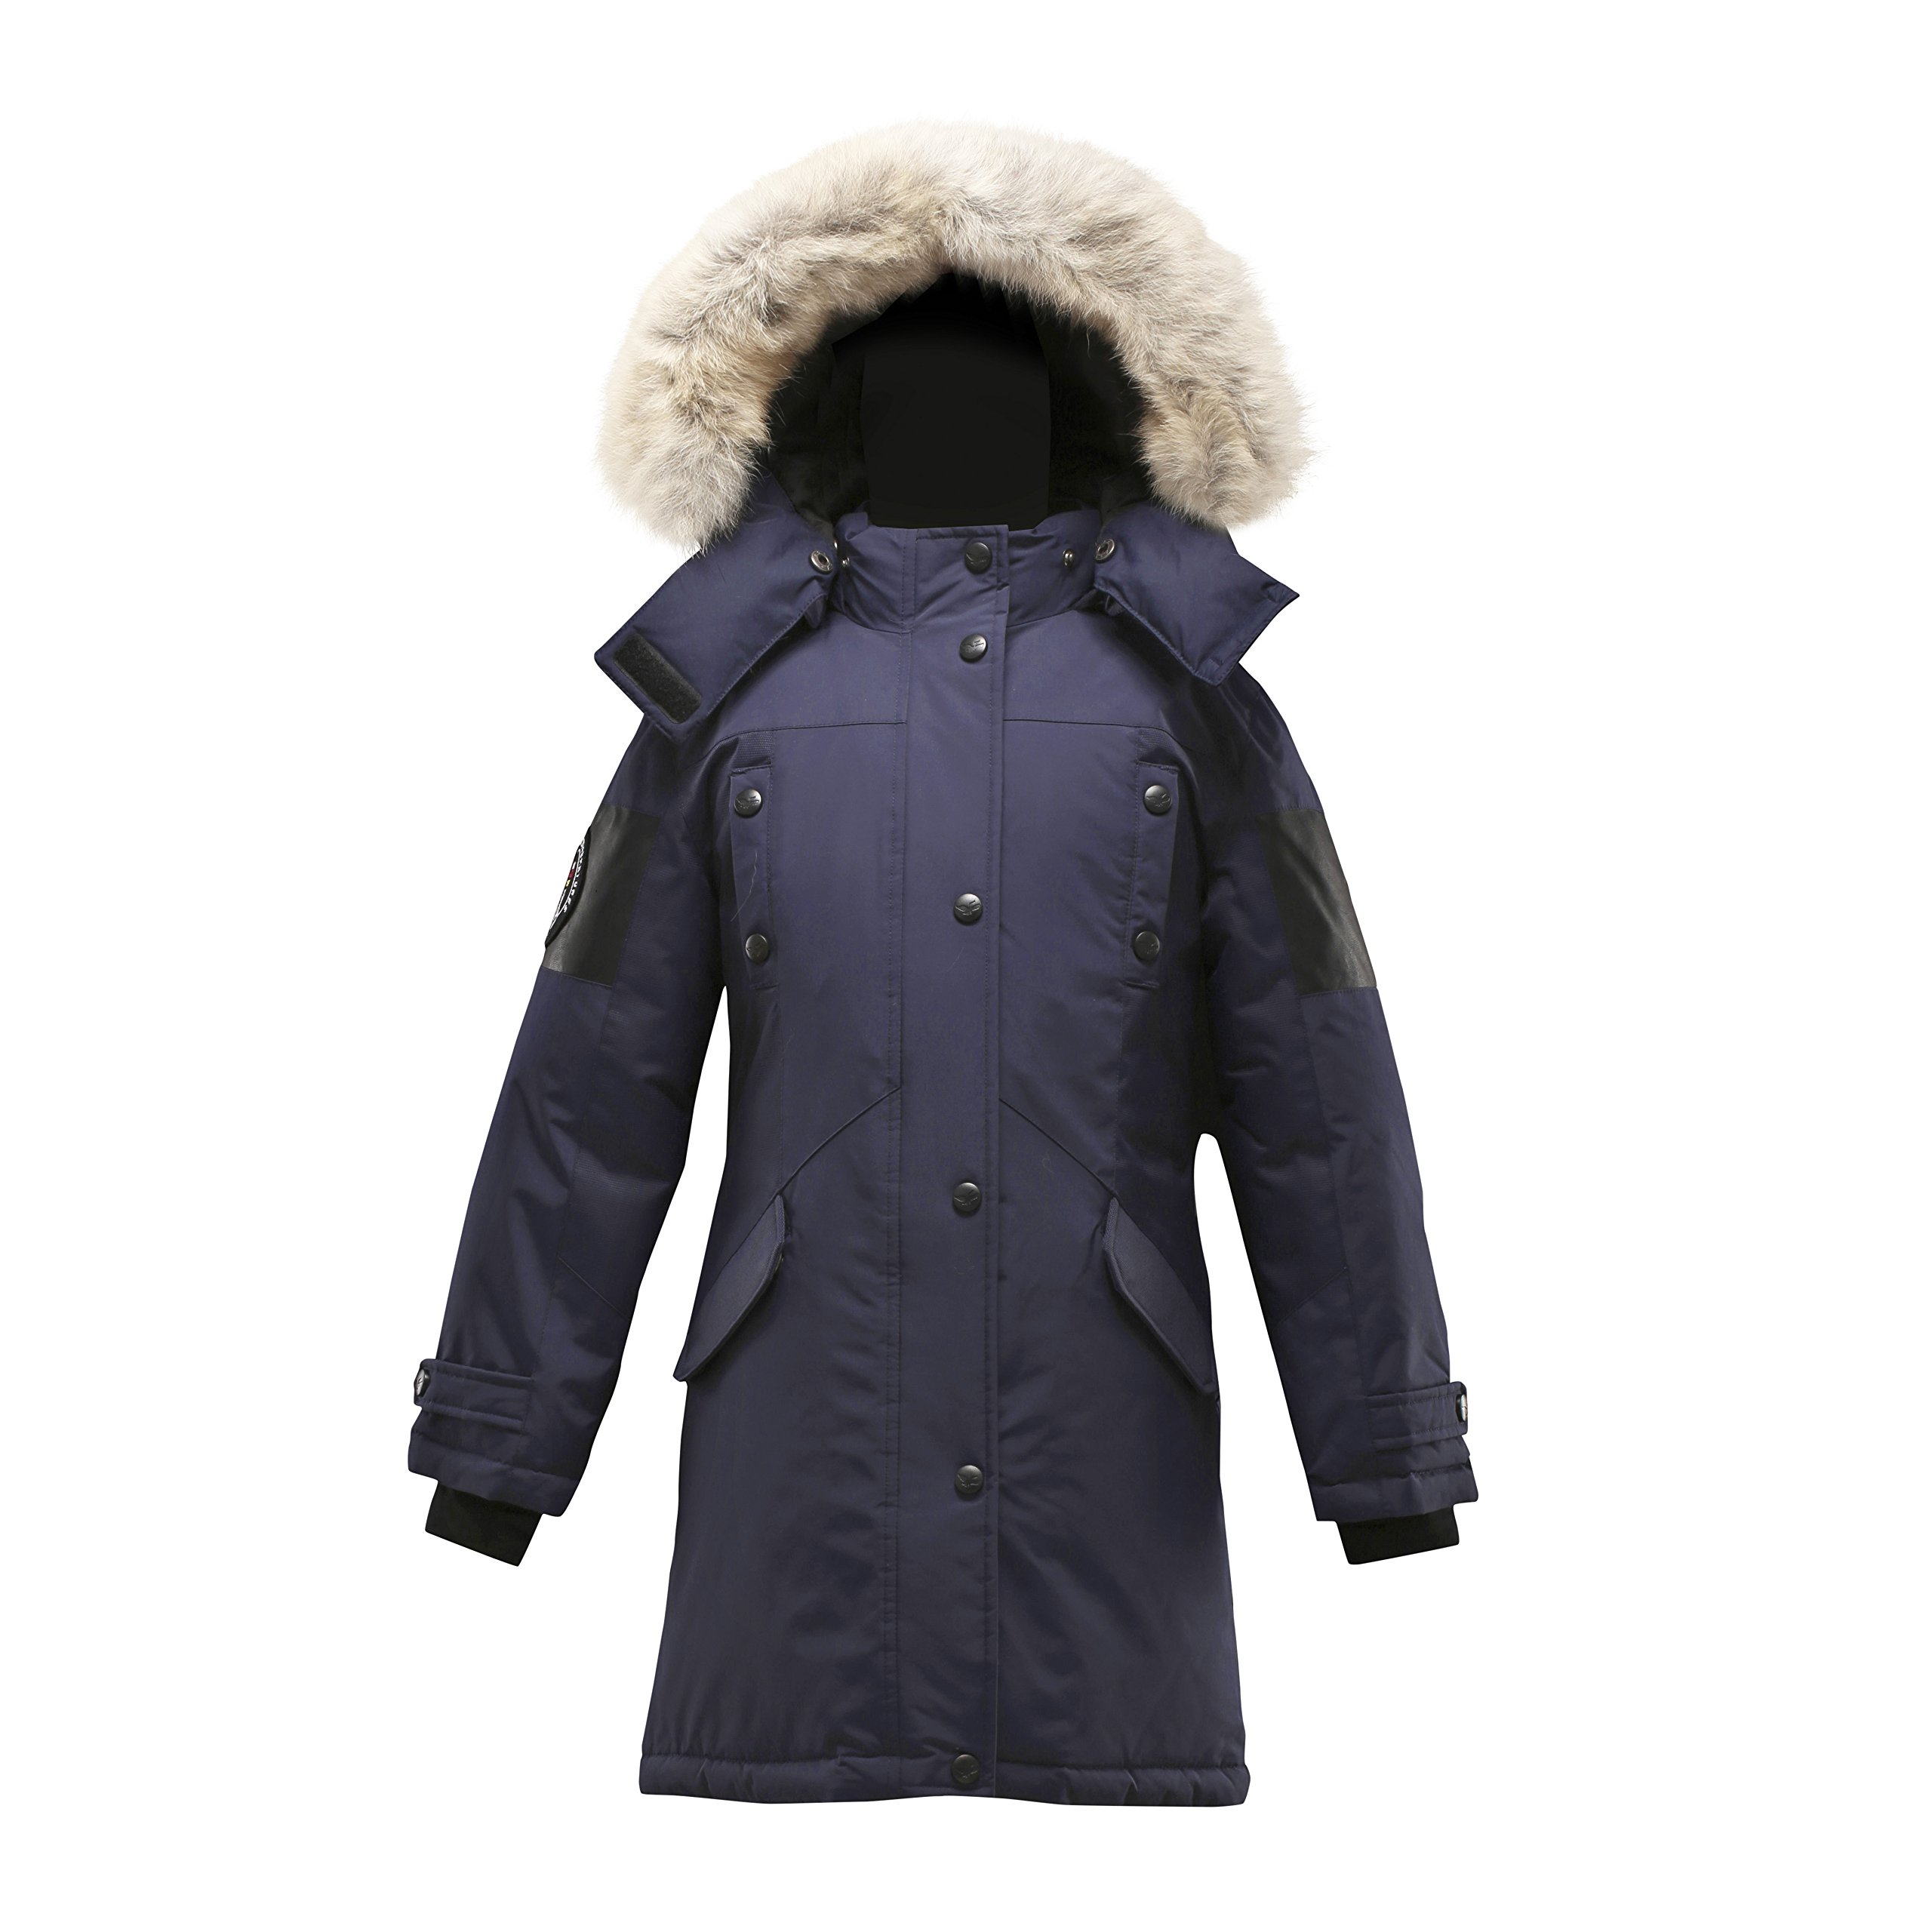 Triple F.A.T. Goose Embree Girls Down Jacket Parka With Real Coyote Fur (12, Navy) by Triple F.A.T. Goose